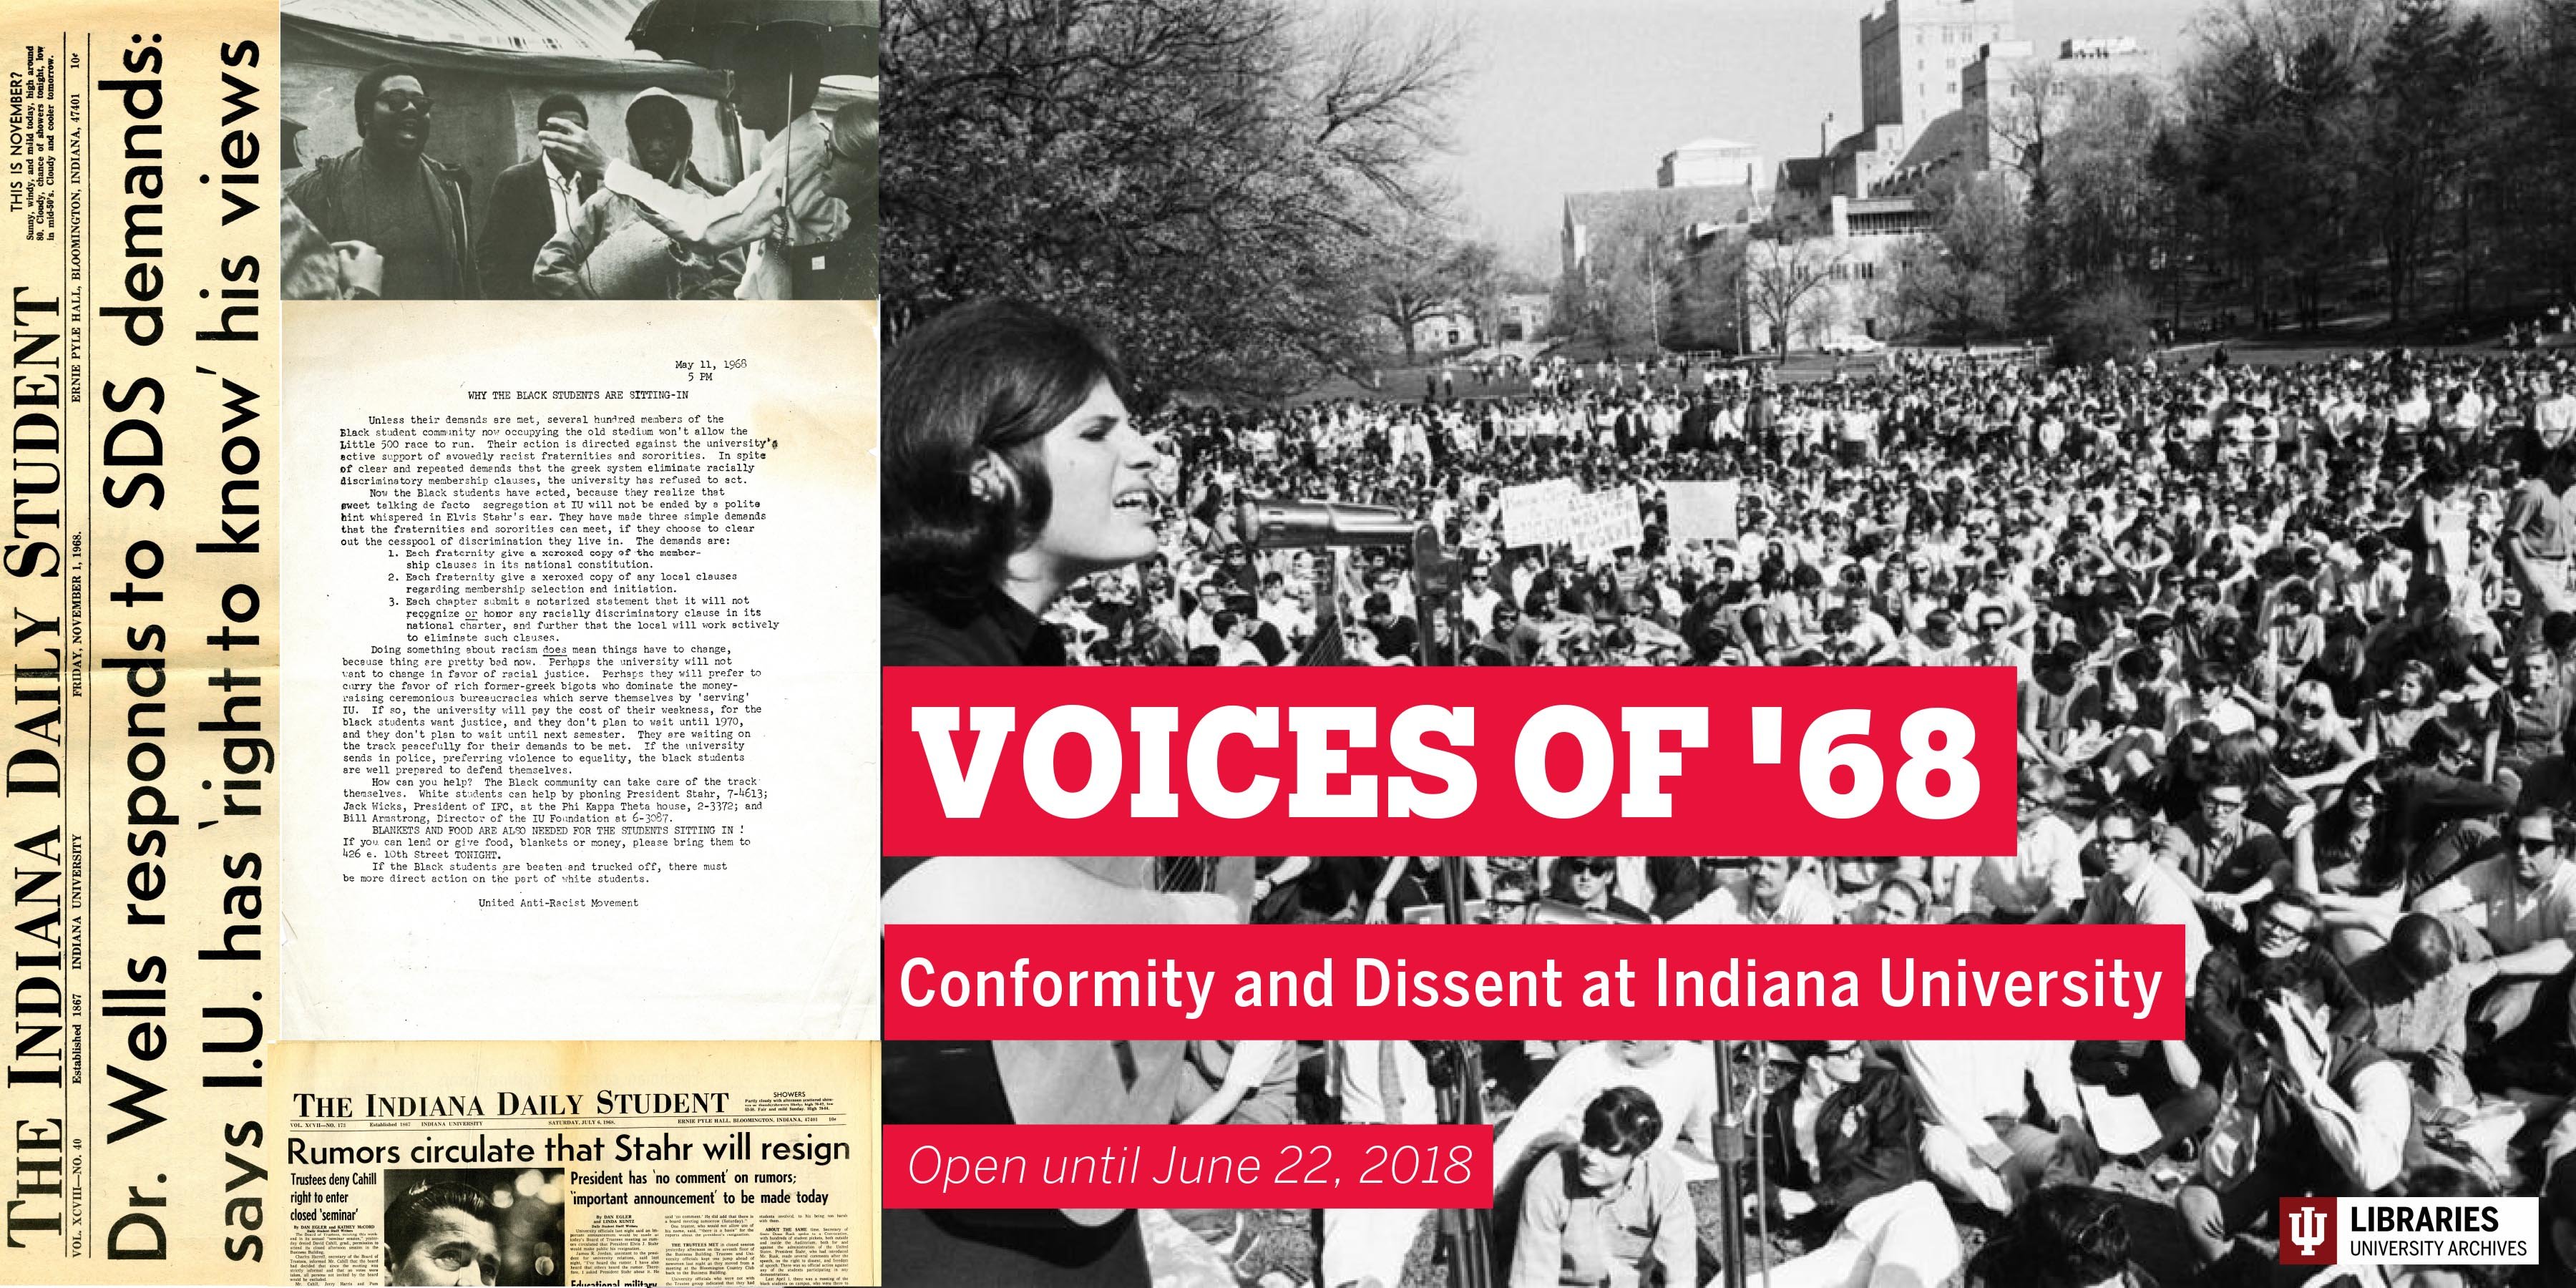 Poster for IU Archives exhibit featuring photograph and documents from exhibit